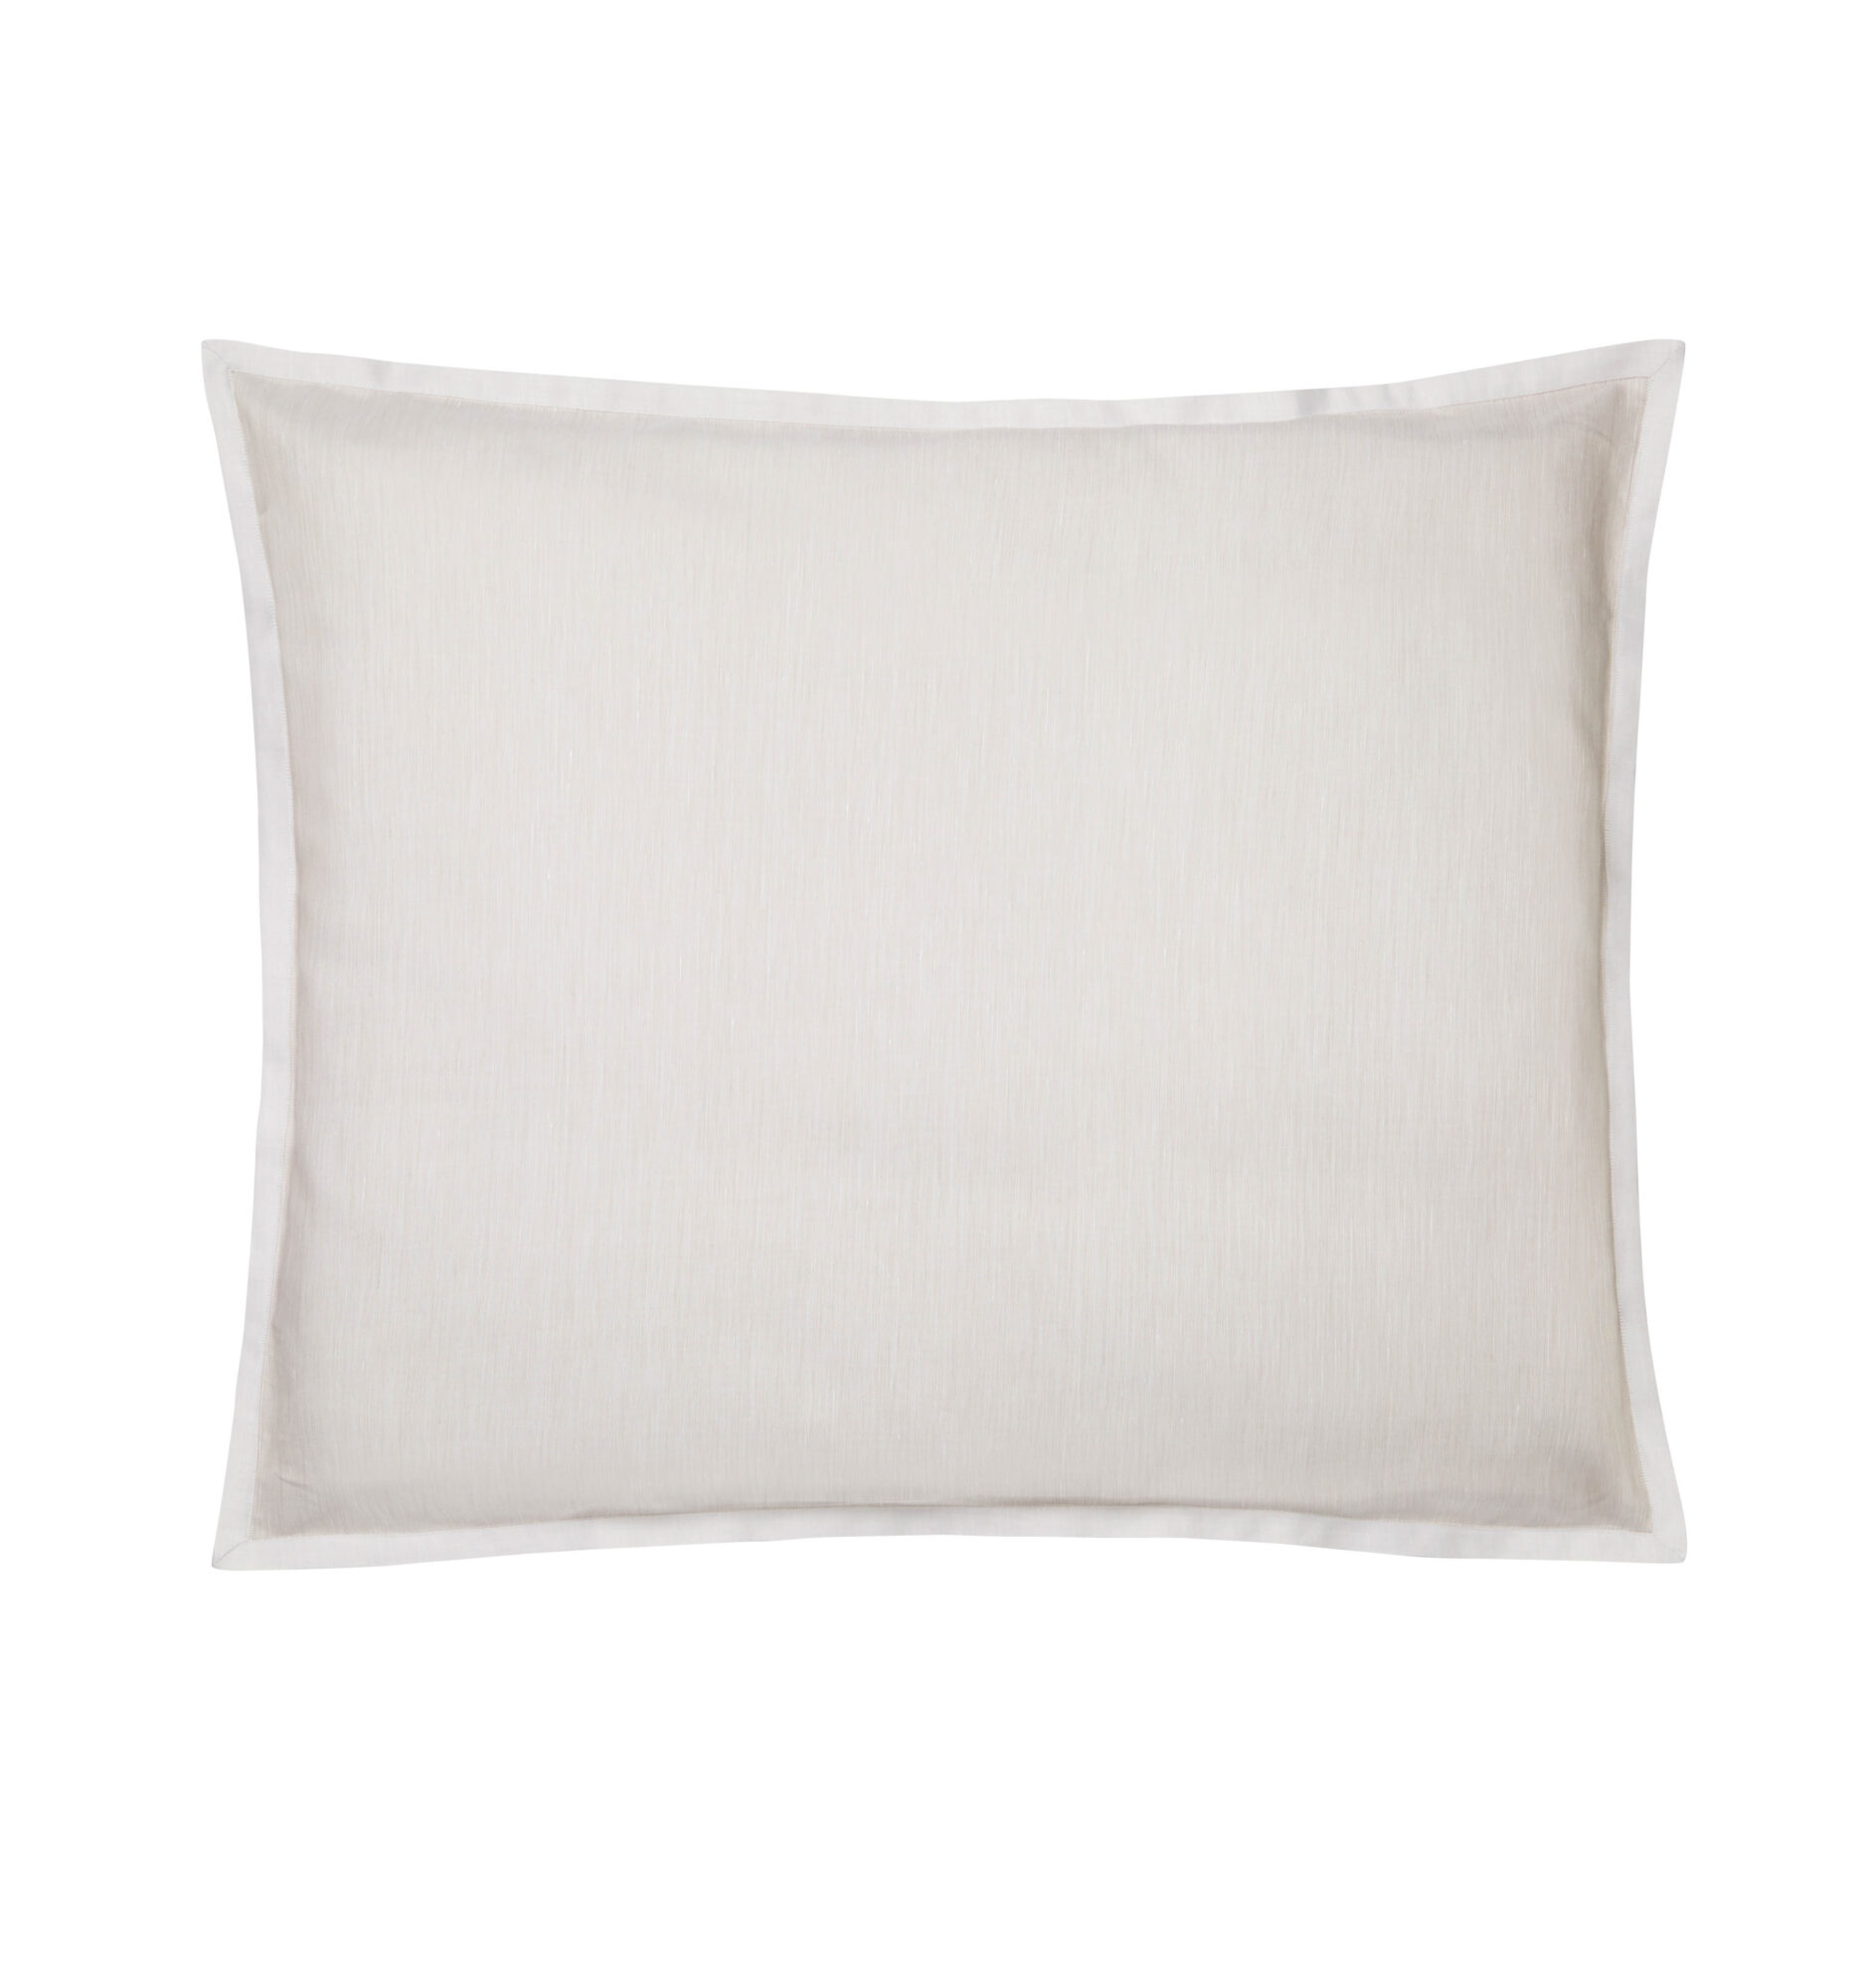 Pillow Sham from Sferra